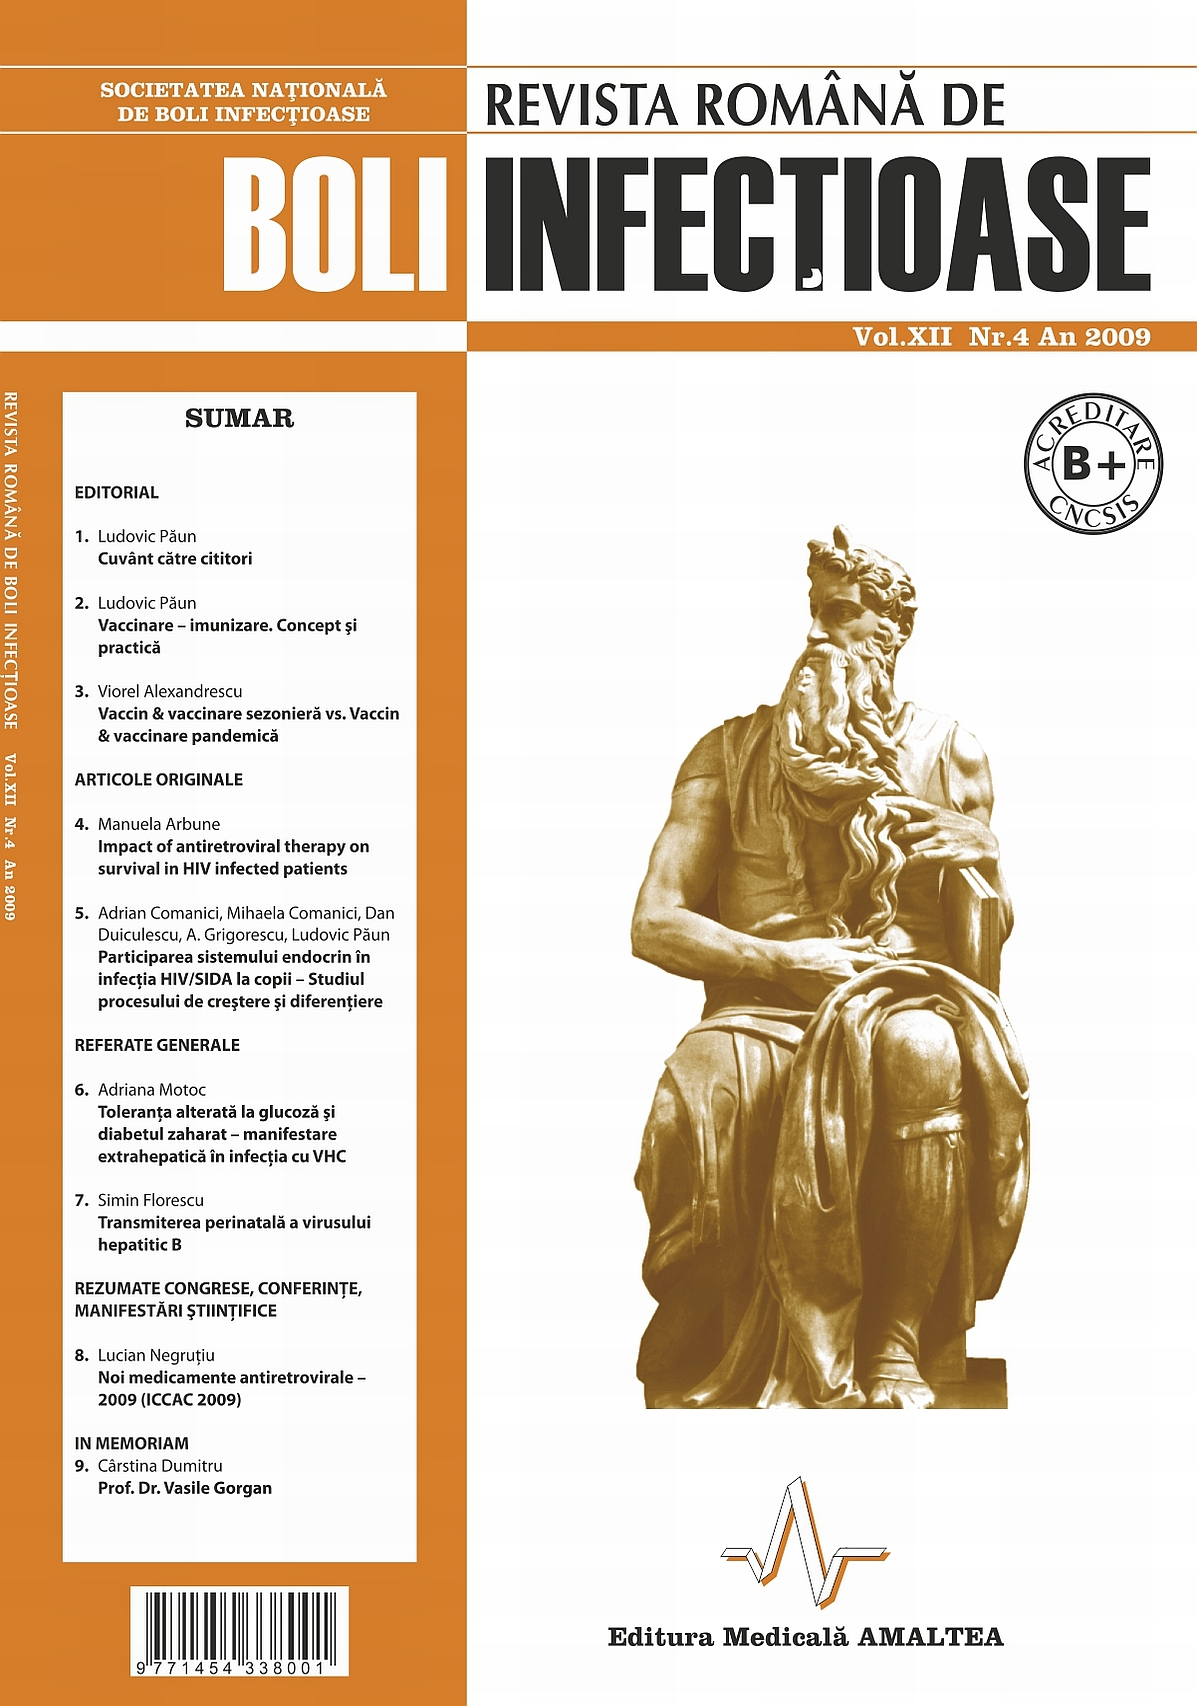 Revista Romana de Boli Infectioase | Vol. XII, No. 4, 2009